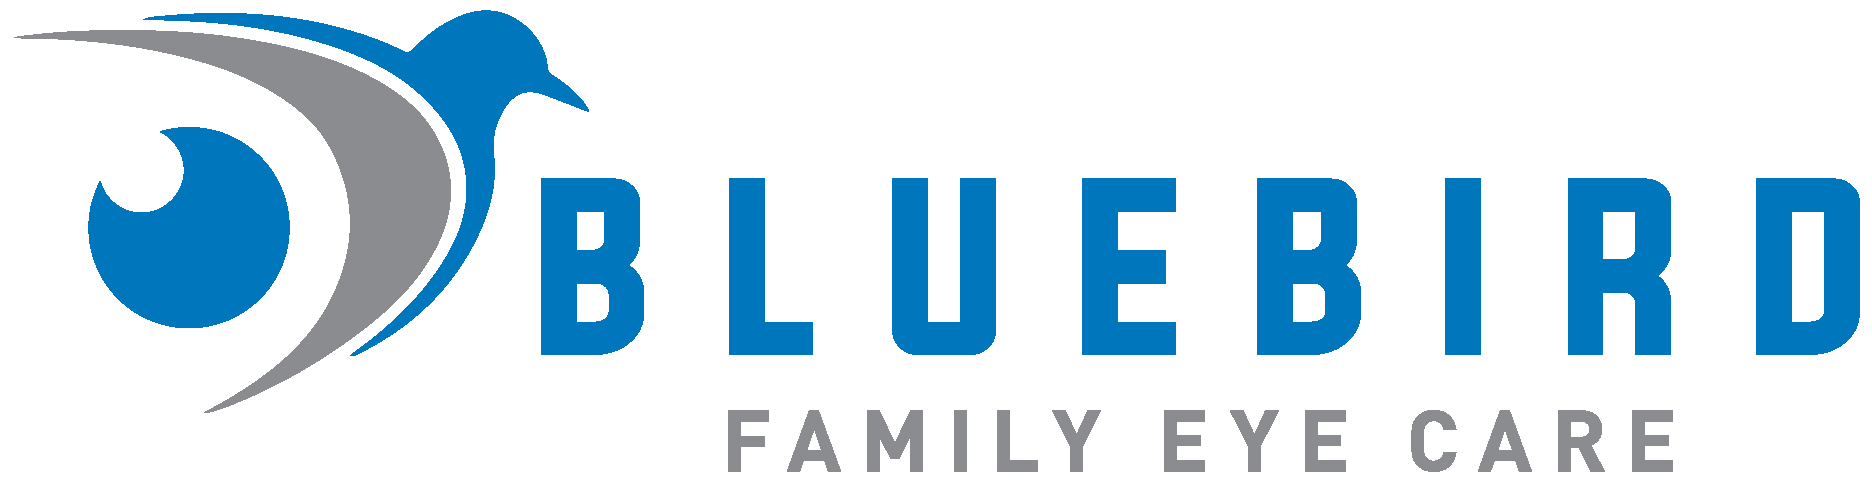 Bluebird Family Eye Care